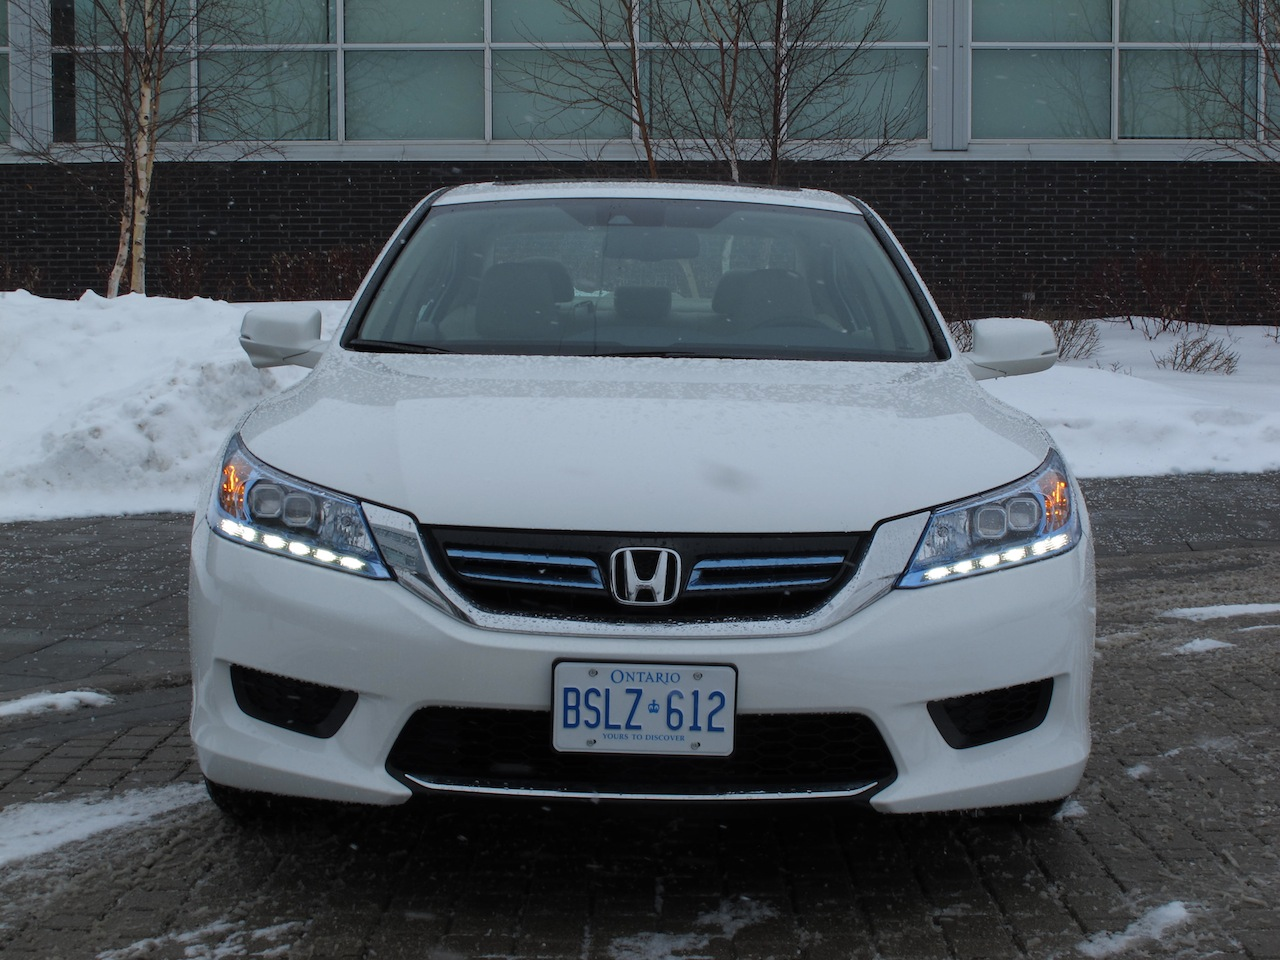 2014 honda accord hybrid cars photos test drives and for 2014 honda accord white